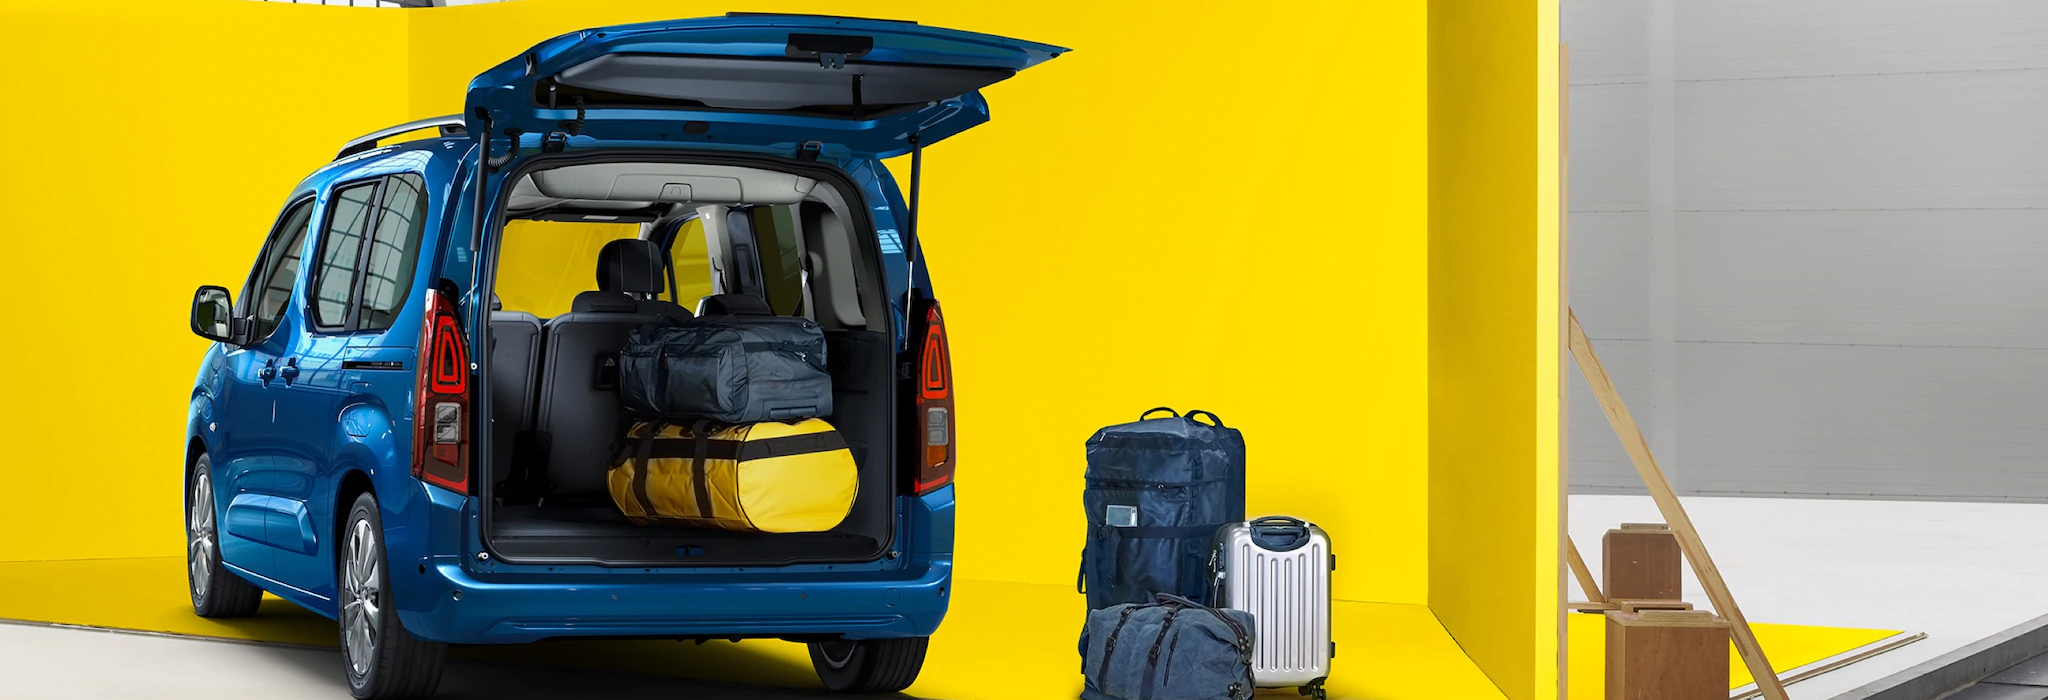 Opel_combo_life_trunk_21x9_cml18_e01_004